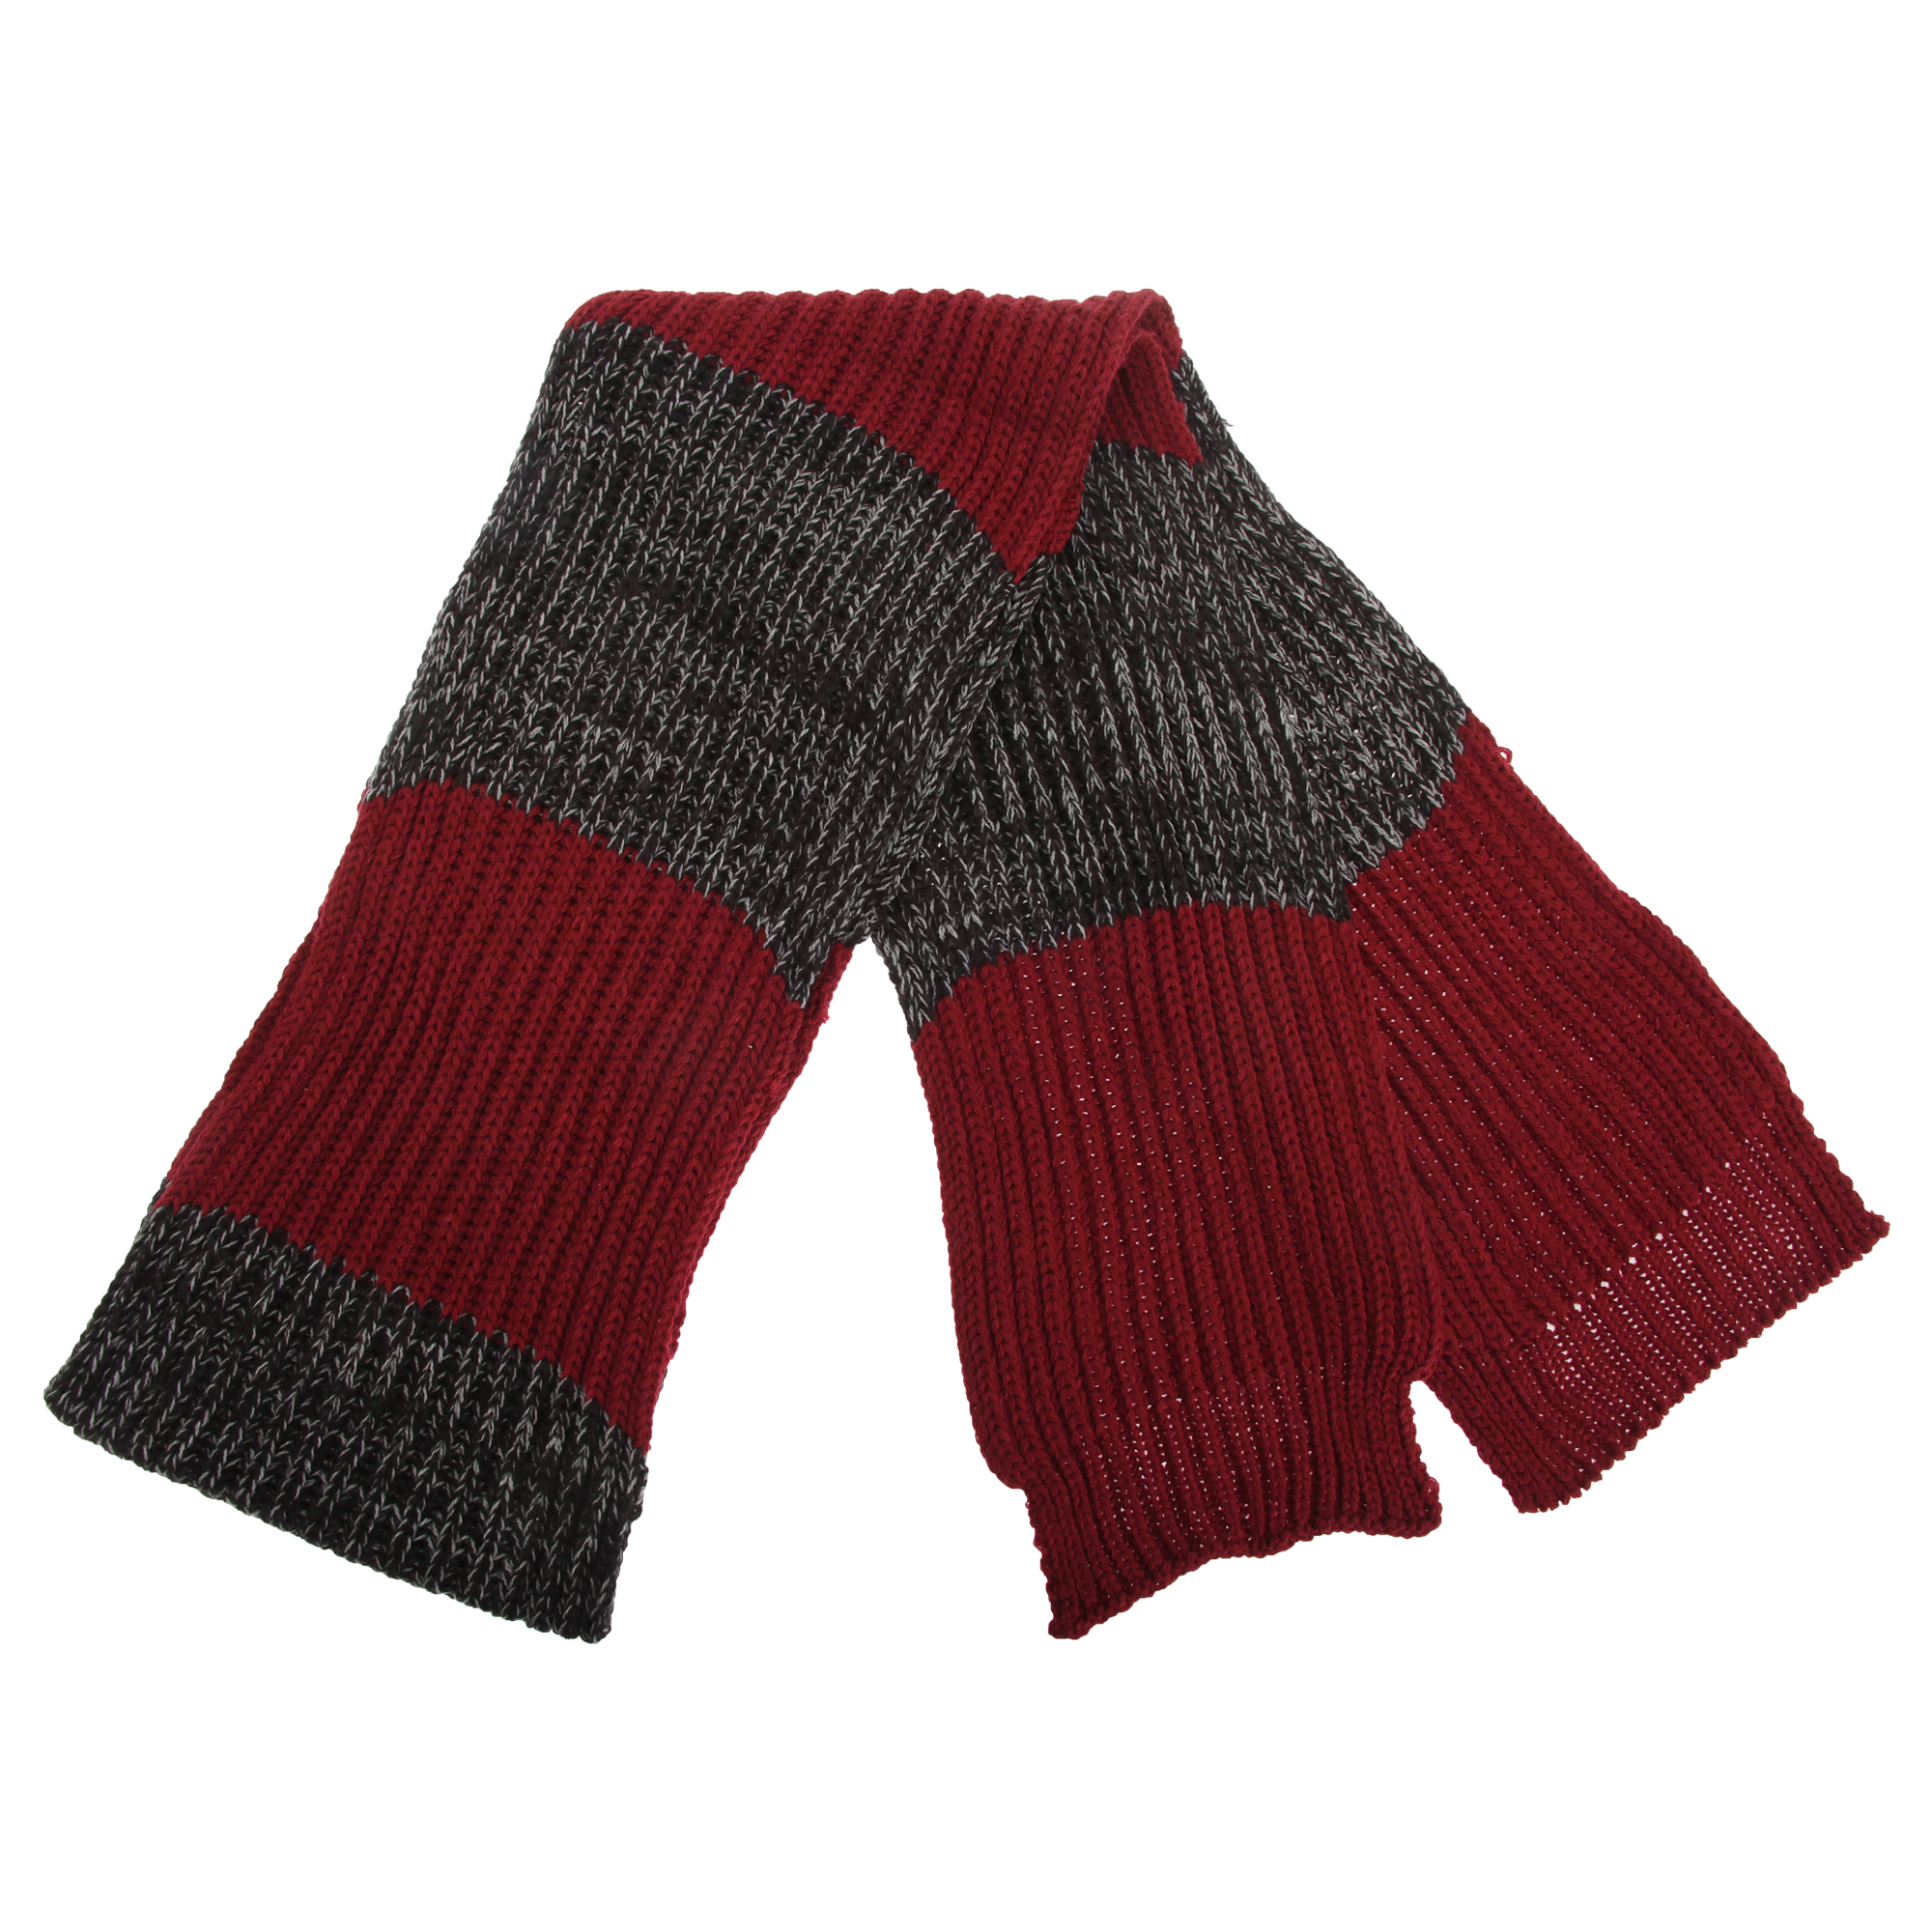 Stocking Stitch Knitting Patterns : Mens Two Tone Color Design Pattern Knitted Warm Winter Neck Scarf /Scarves ...